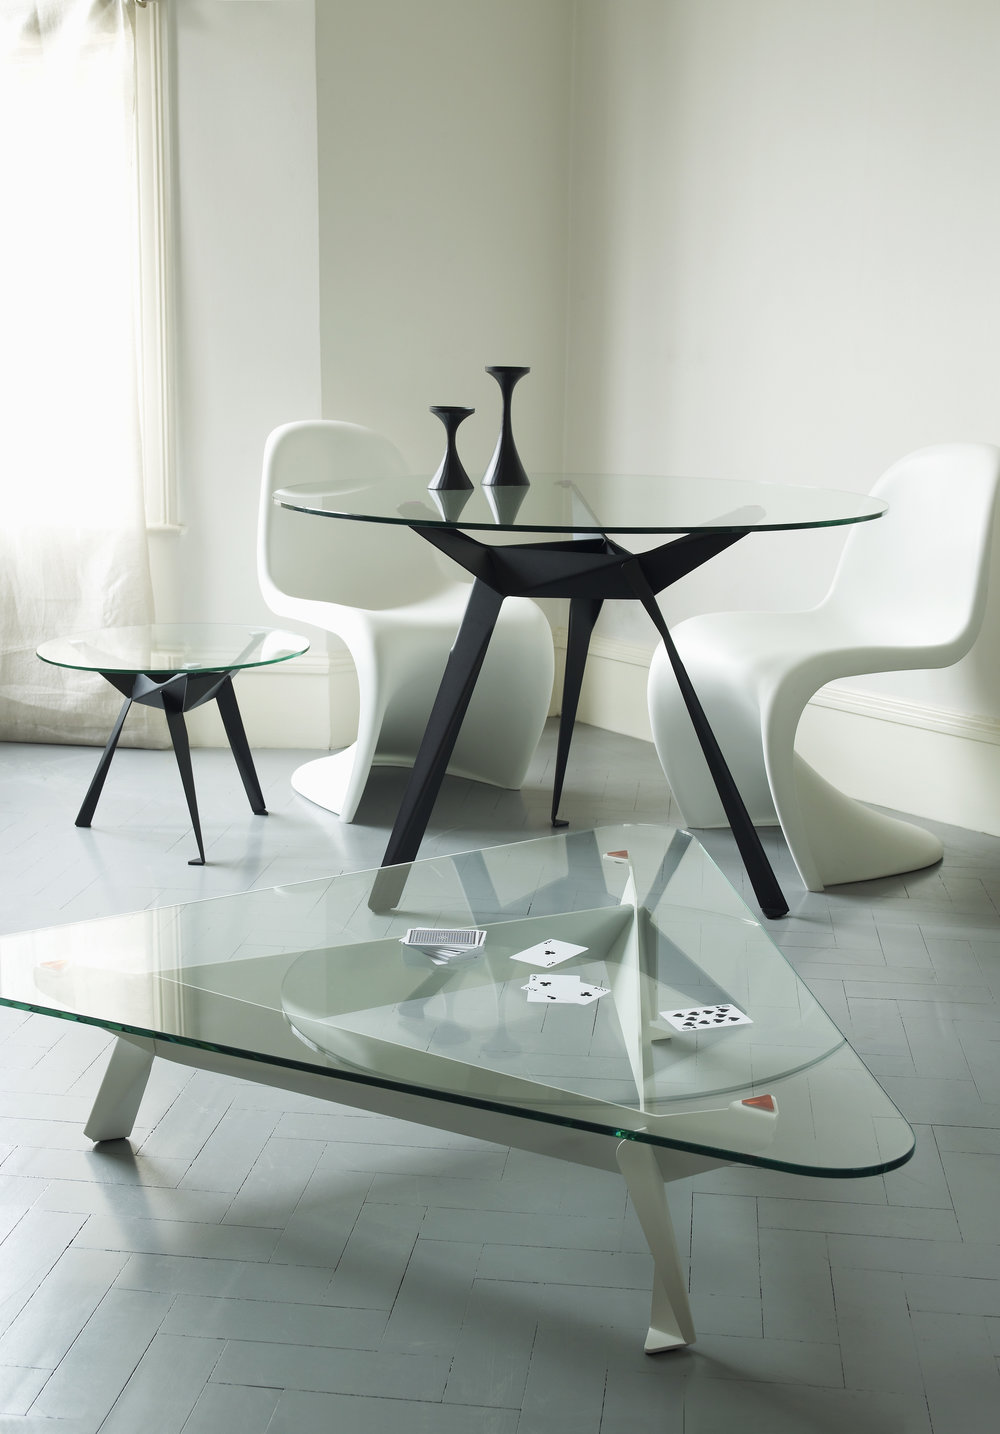 FURNITURE INNOVATION - Origami Table